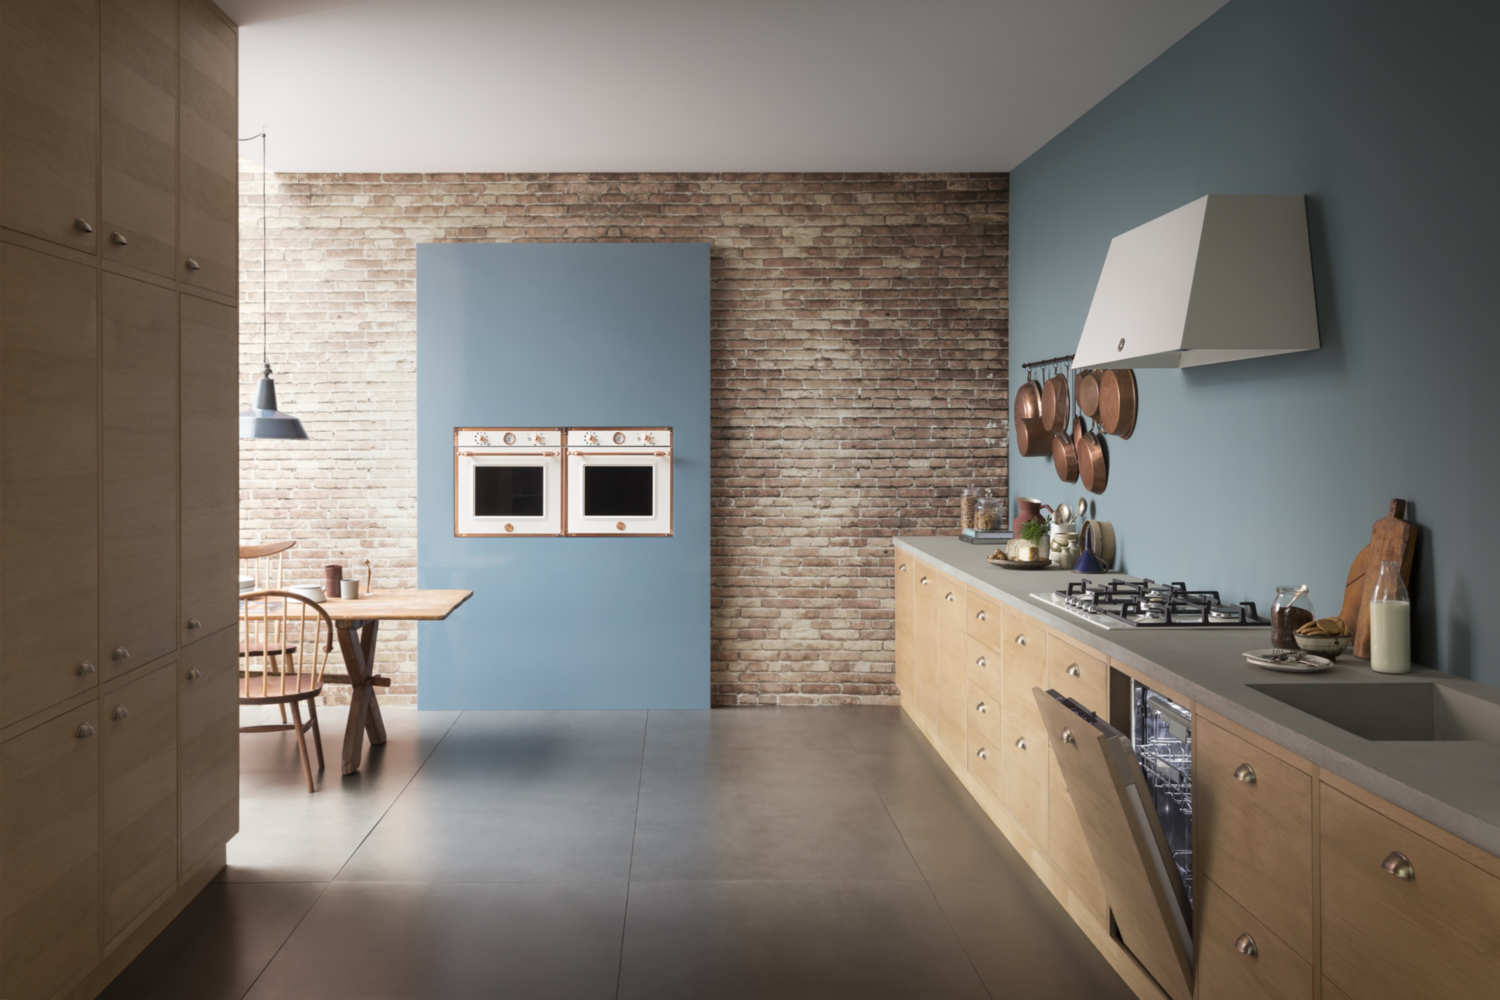 Case E Stili Design italian style kitchen, how to get the style (without